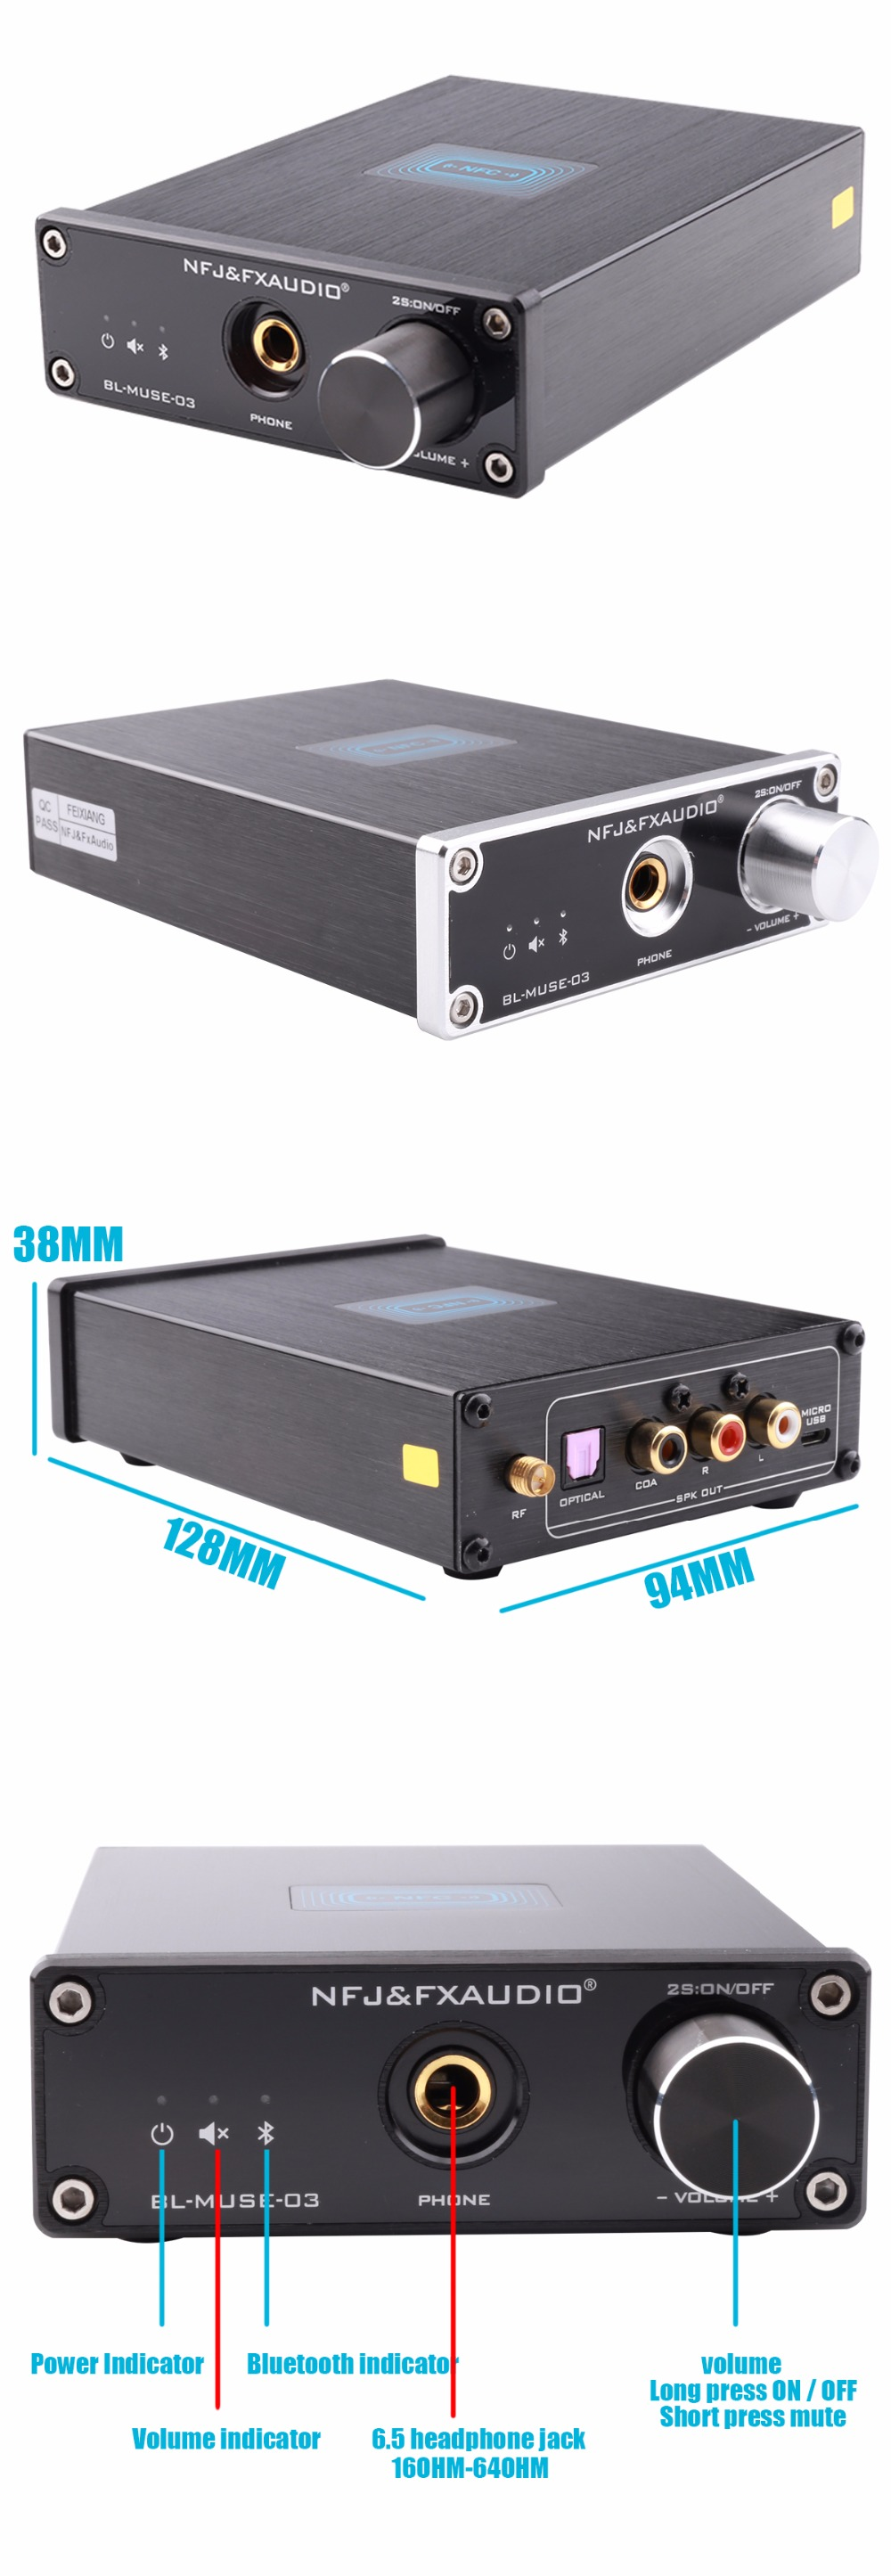 FX-Audio BL-MUSE-03 Bluetooth 4.2 CSRA64215 Audio Receiver DAC Decoding Lossless MINI HiFi Sound Quality Headphone Out Amplifier